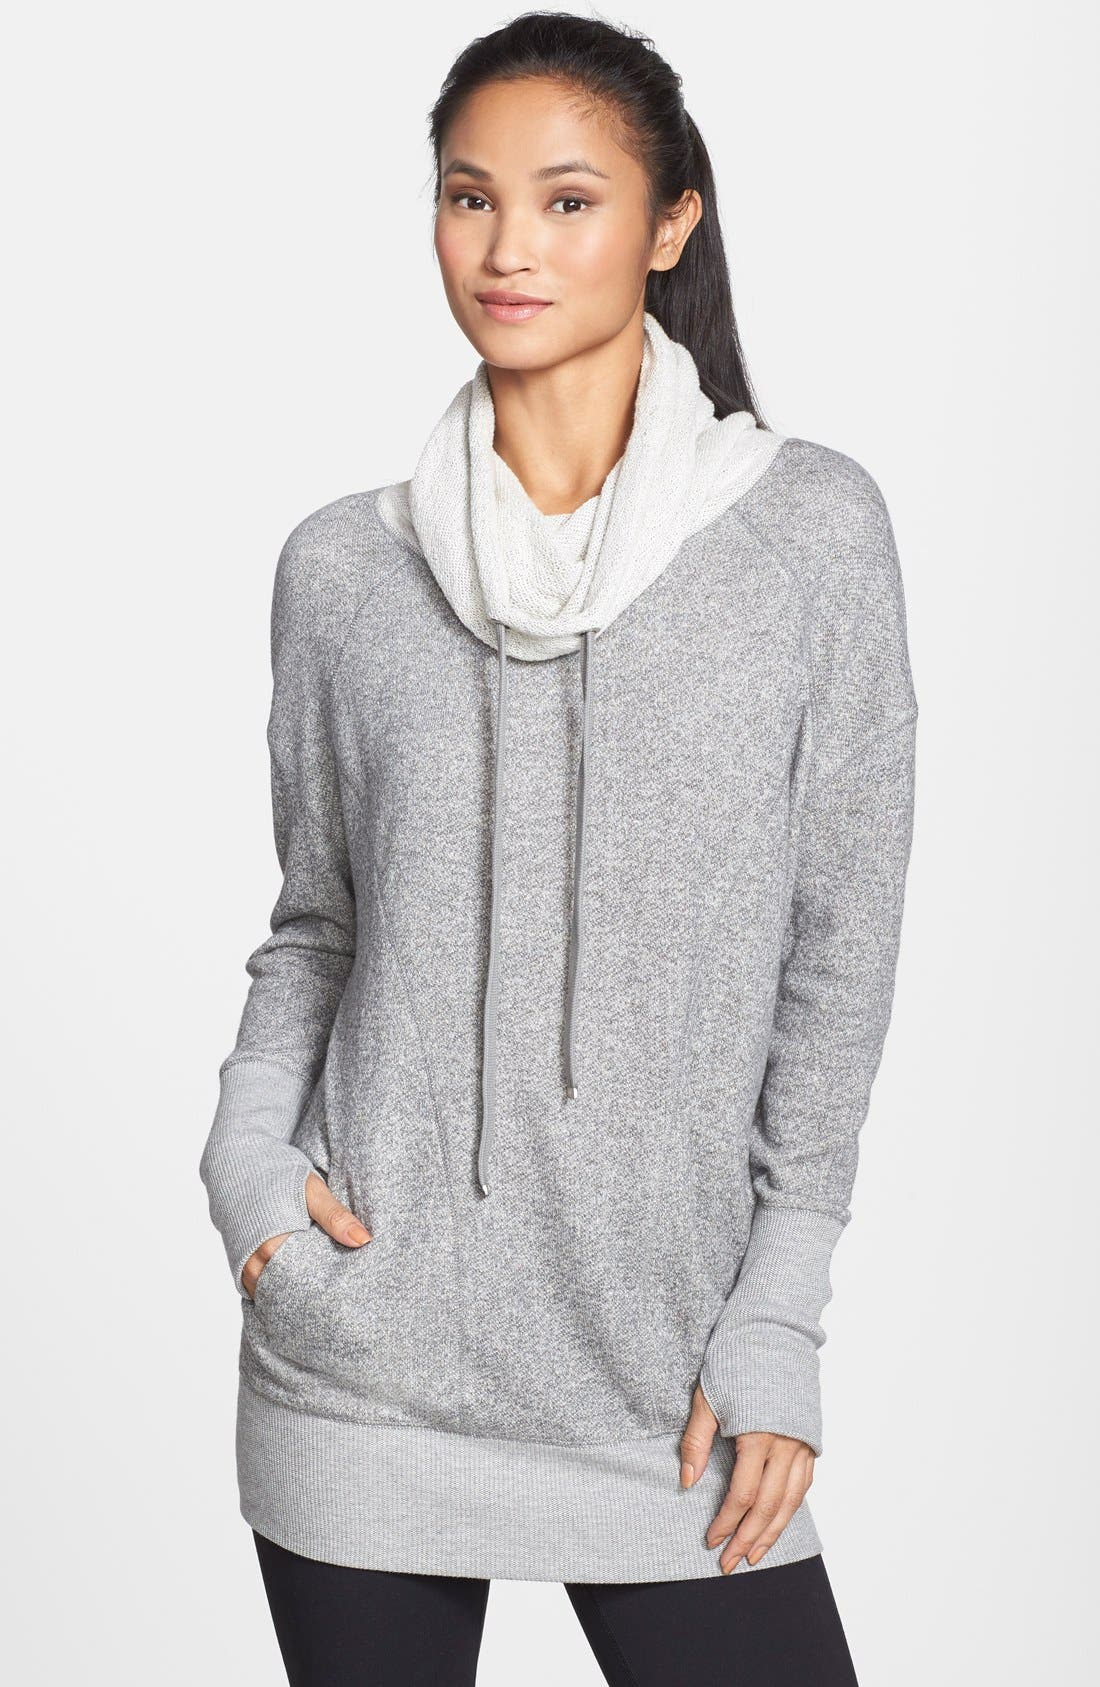 'Serenity' French Terry Sweatshirt,                         Main,                         color, 030